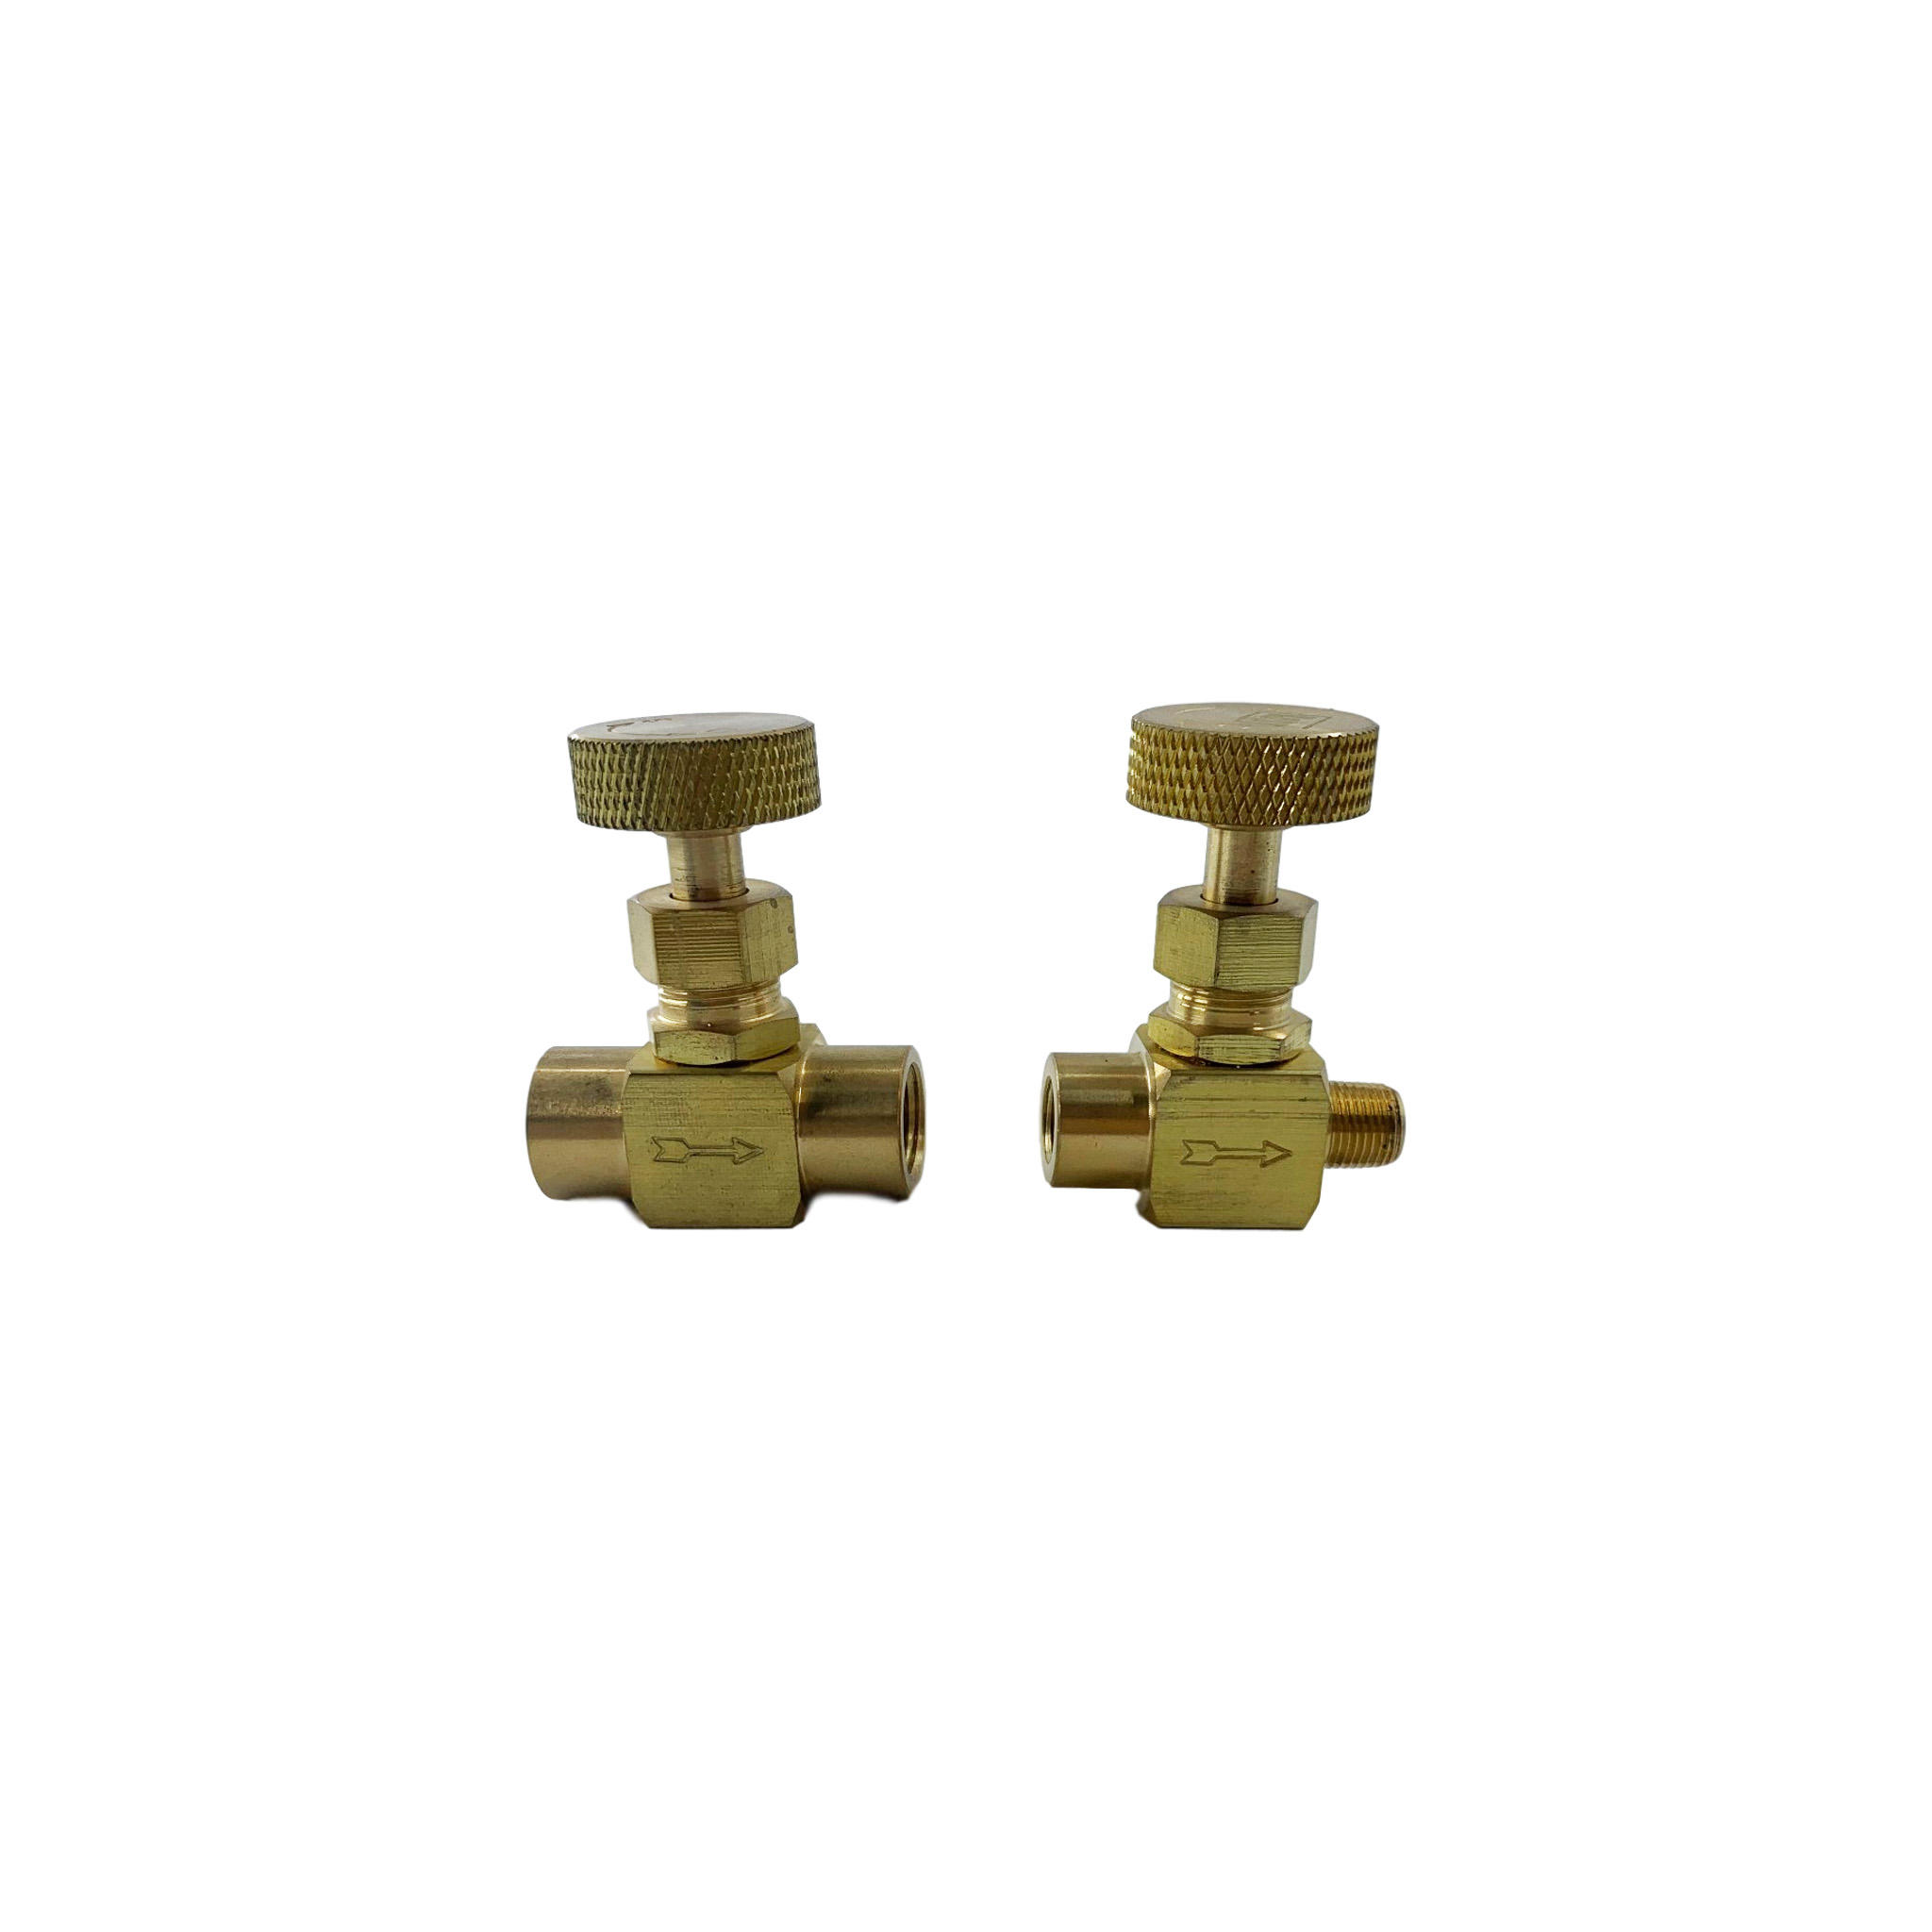 Medium and high pressure brass straight instrument needle valve